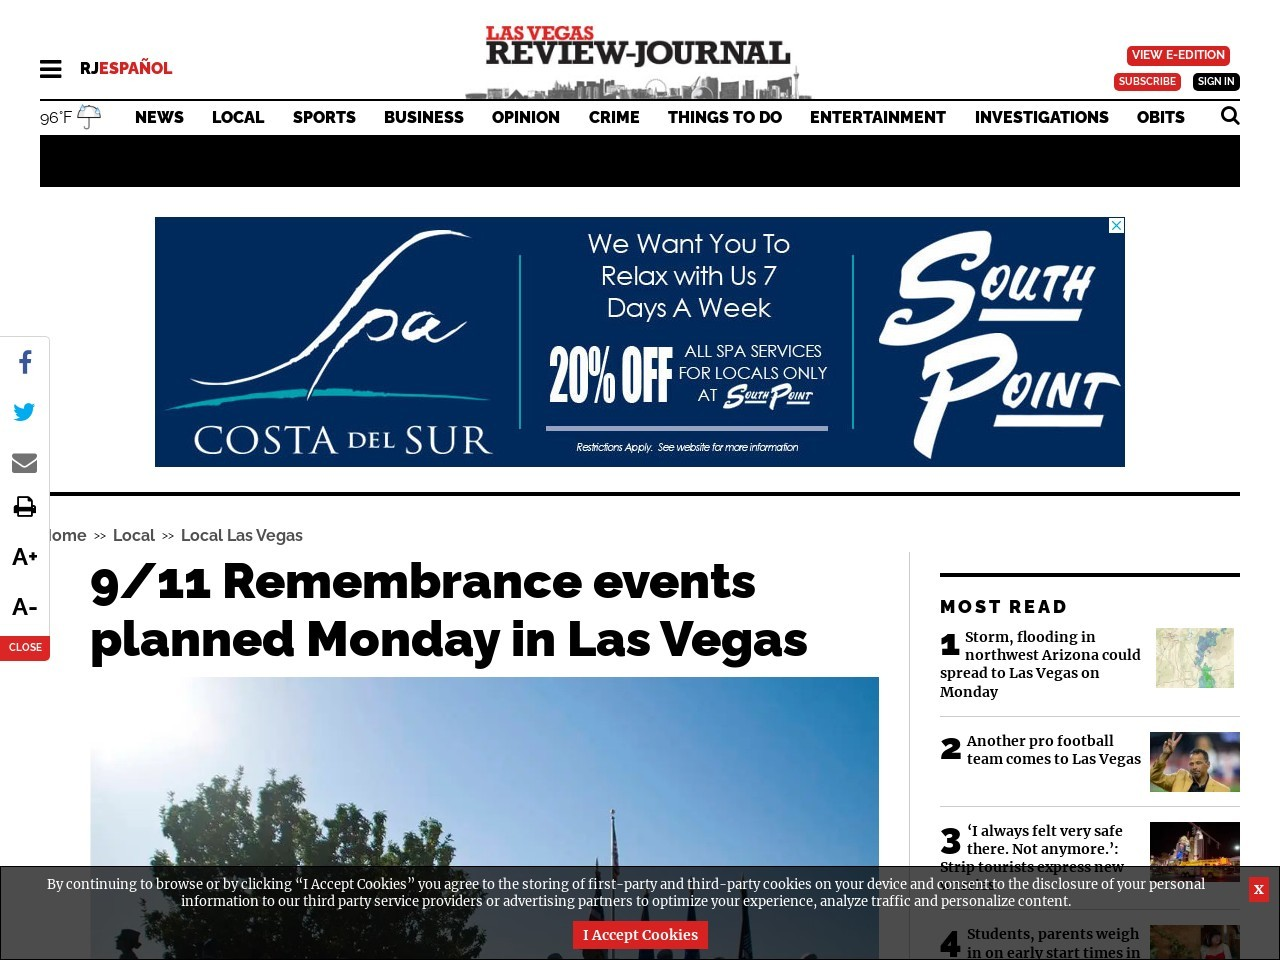 9/11 Remembrance events planned Monday in Las Vegas